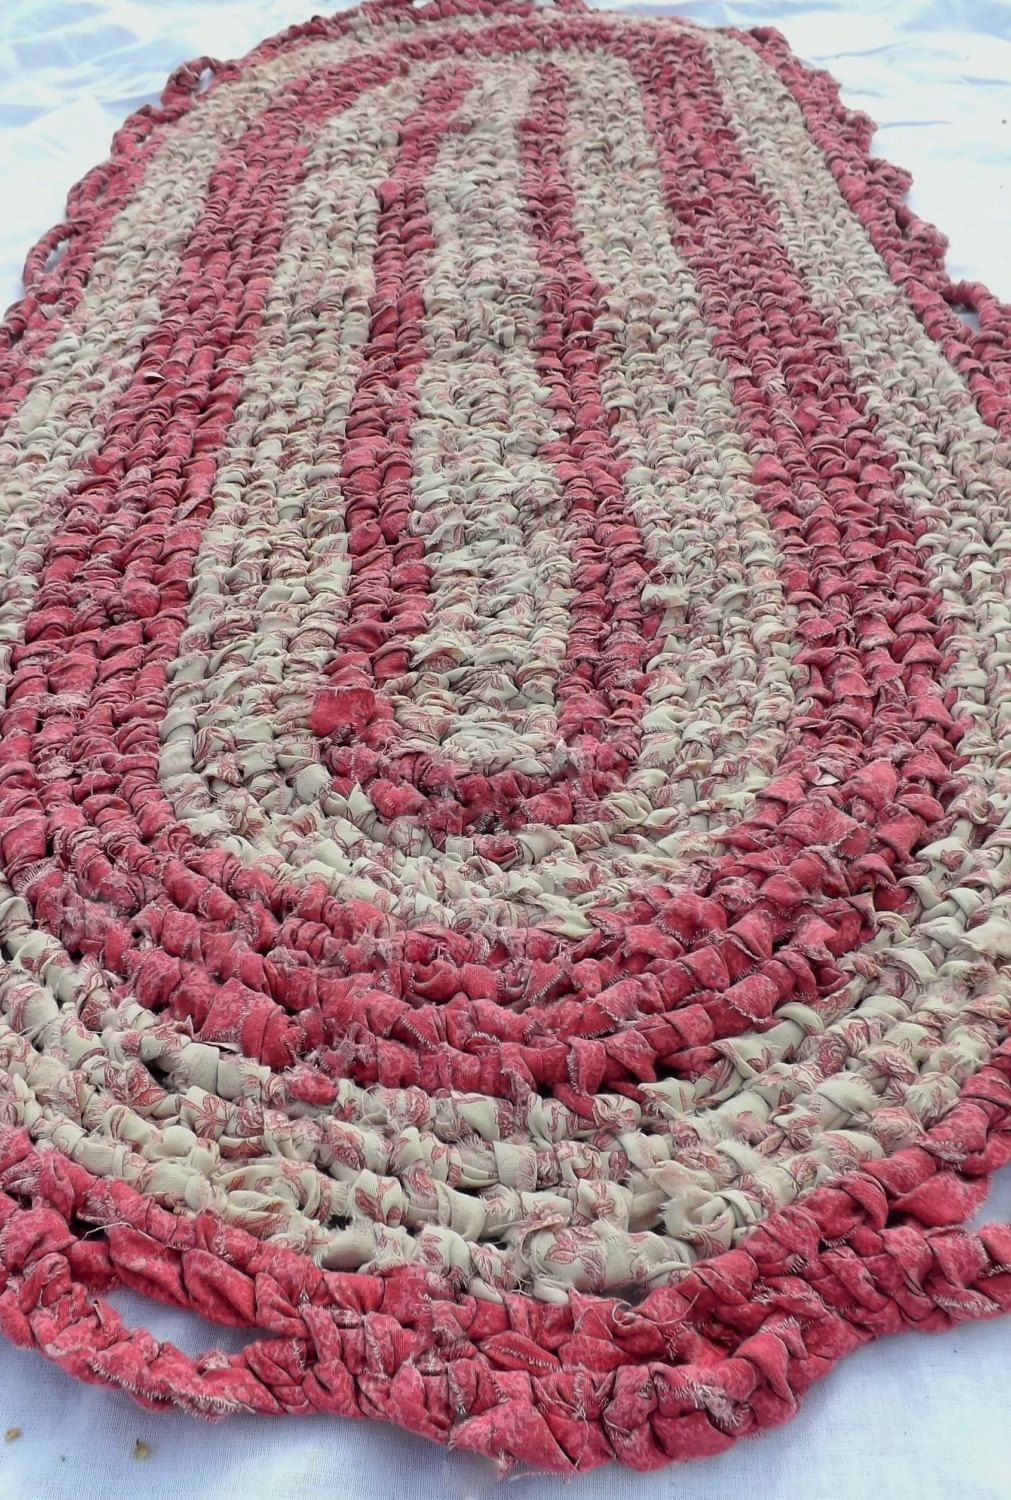 52 X22 Dusty Rose And Beige Large Knotted Rag Area Rug